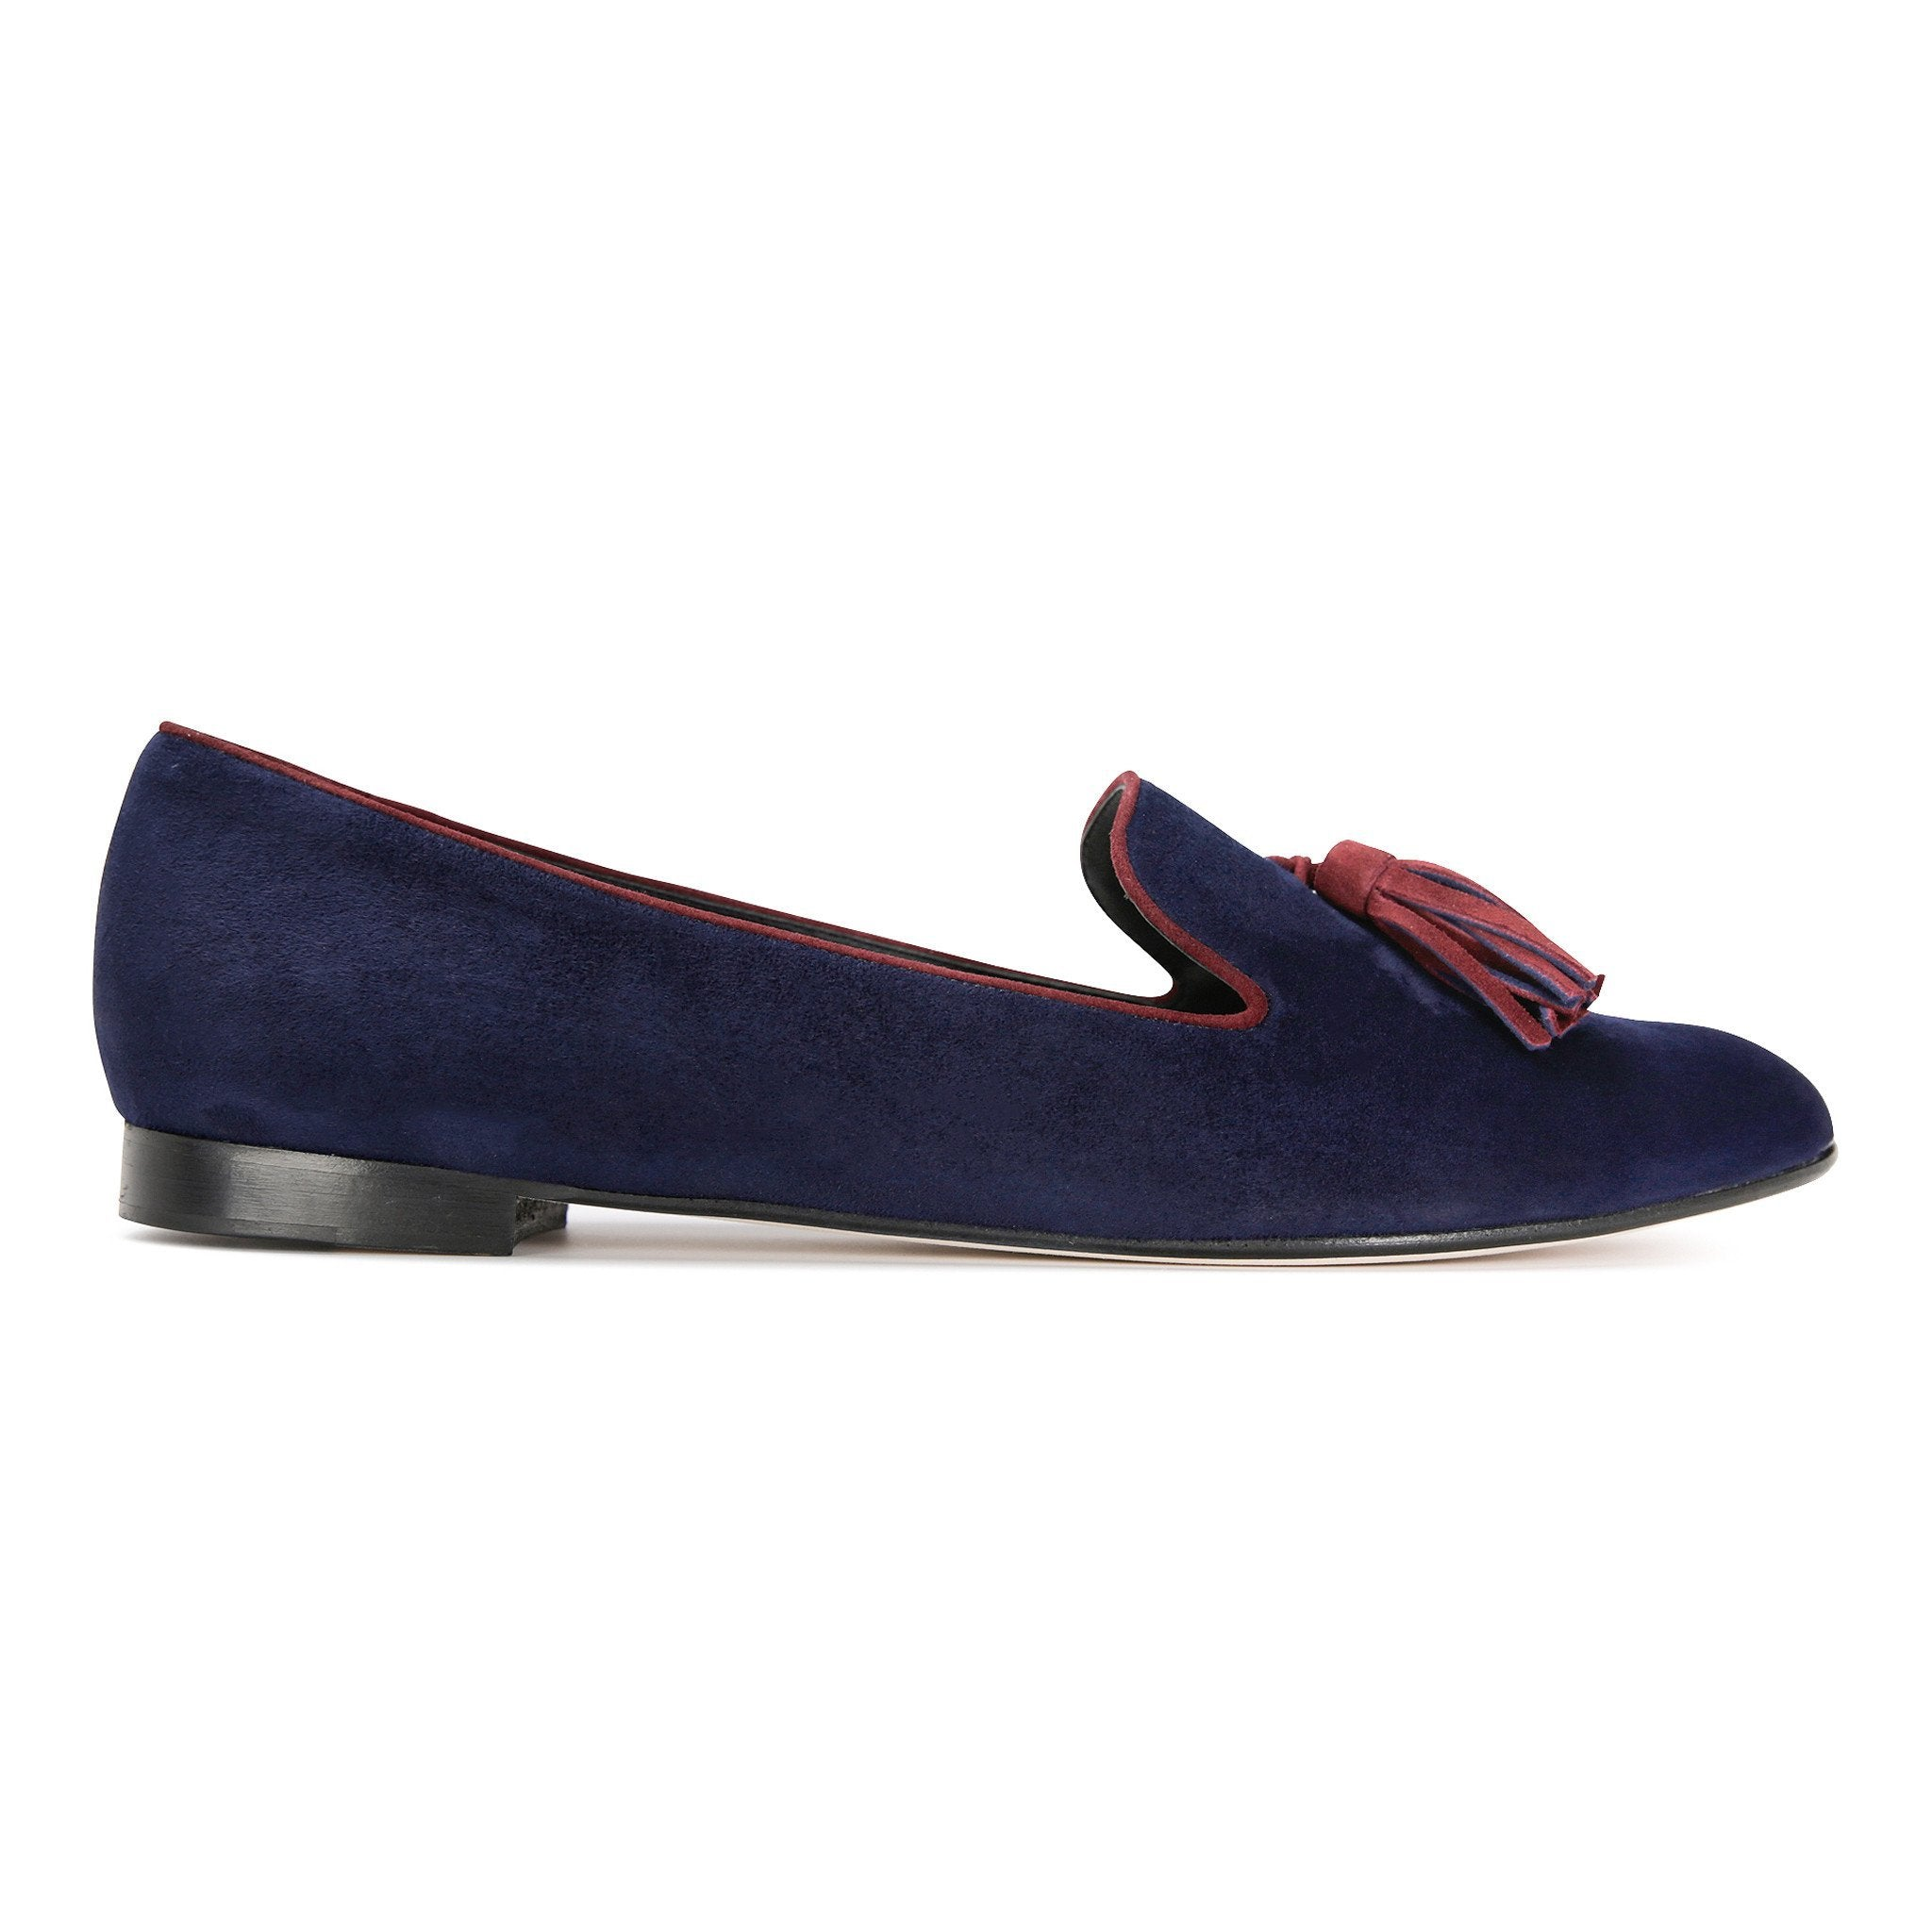 PARMA - Velukid Midnight + Garnet, VIAJIYU - Women's Hand Made Sustainable Luxury Shoes. Made in Italy. Made to Order.